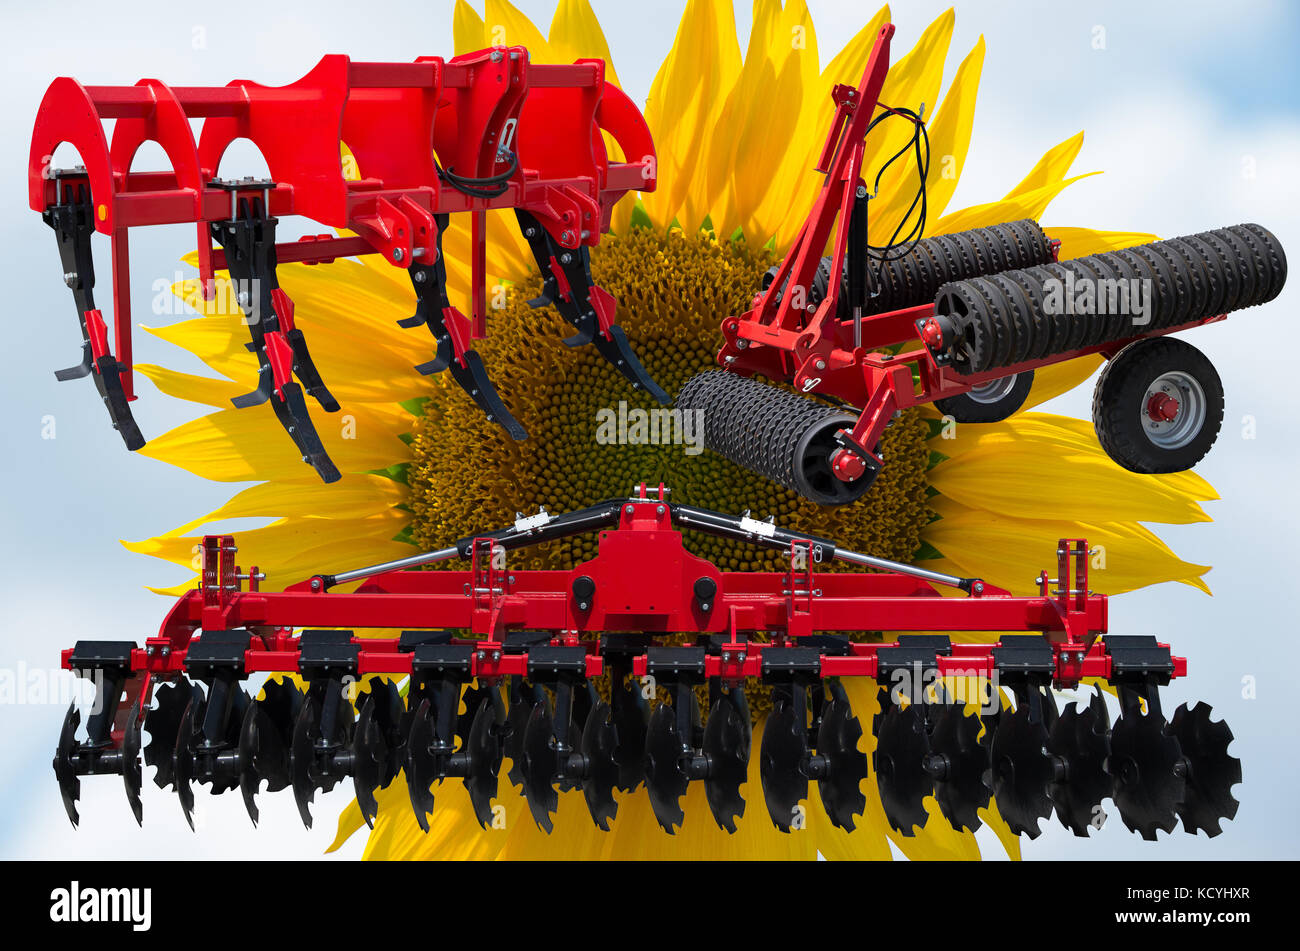 Farm equipment and implements - disc harrow, subsoiler, flat lifter and roller tractor trailer. - Stock Image